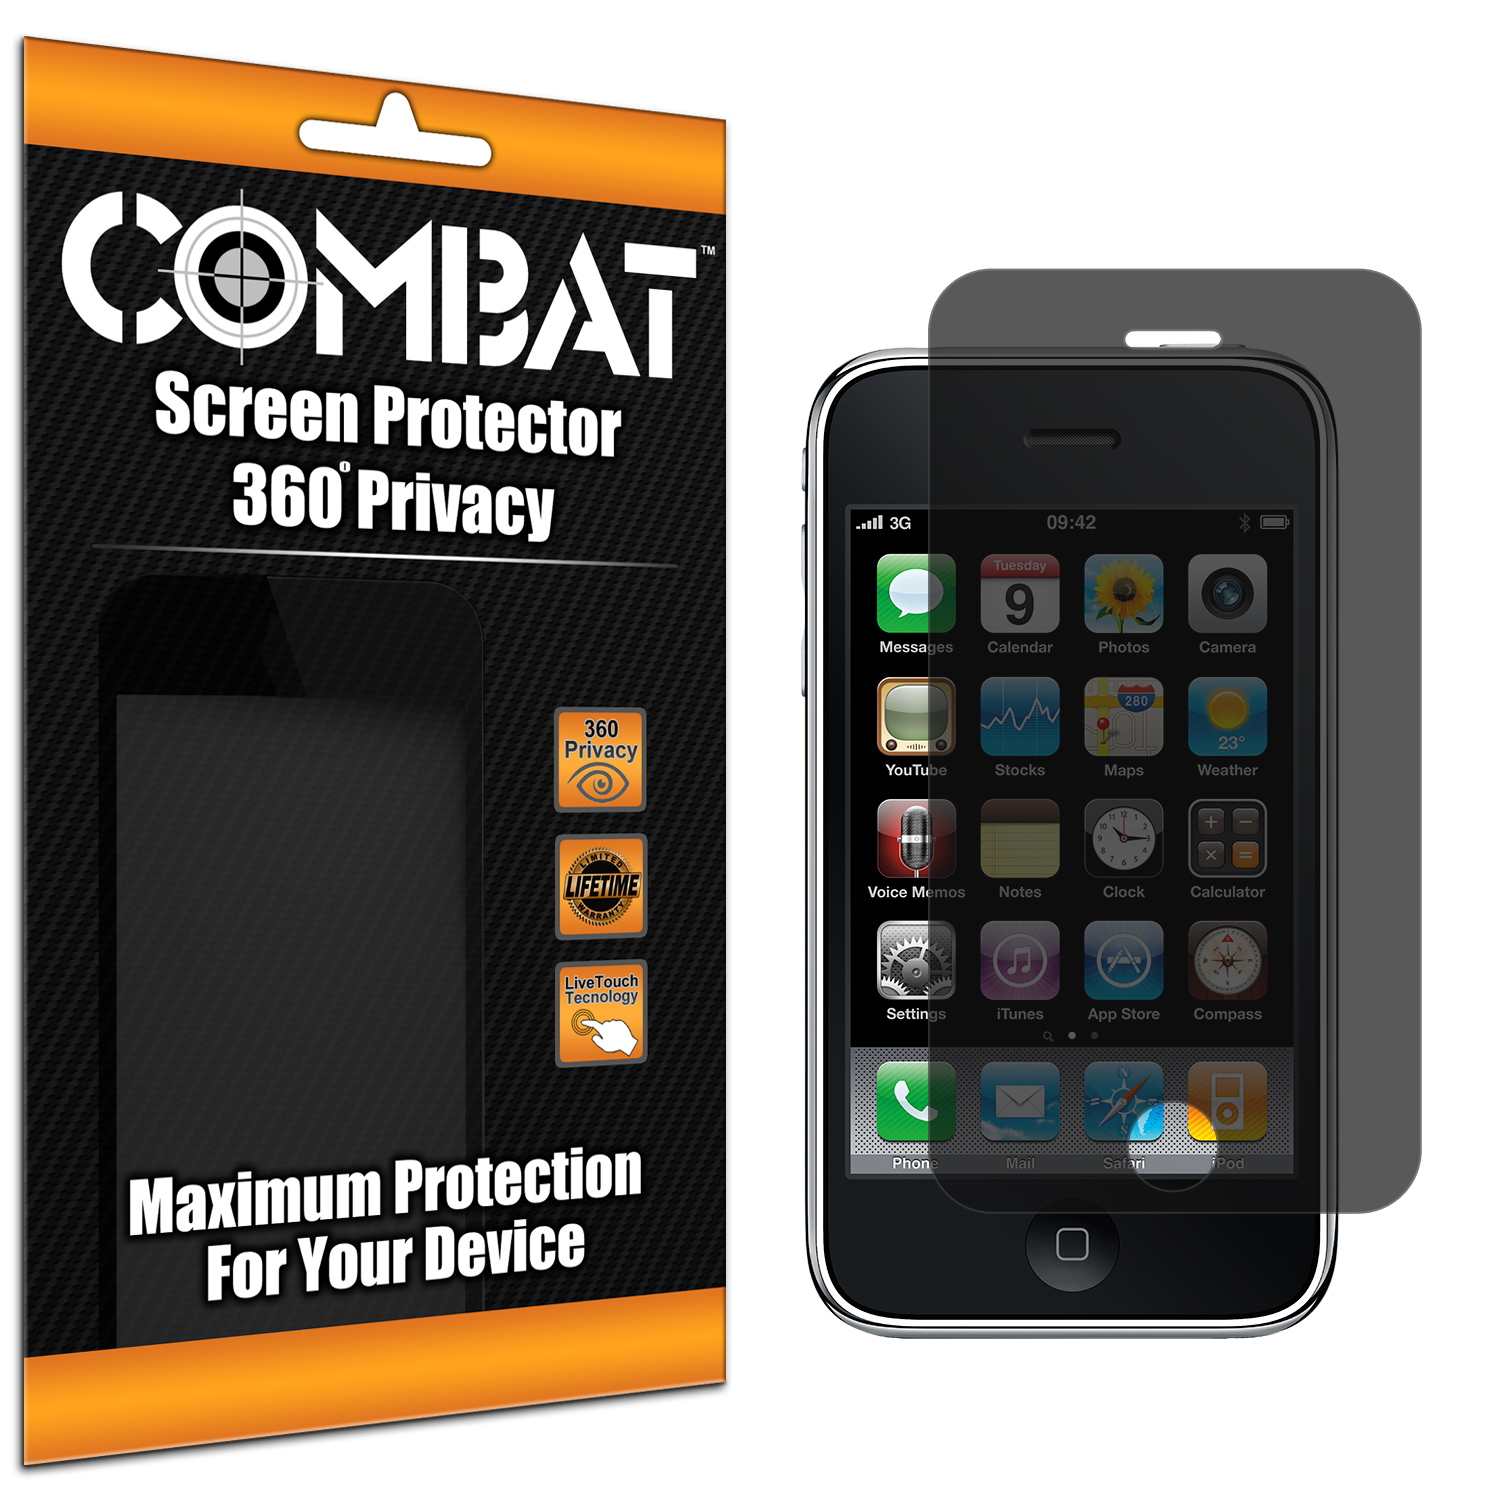 Apple iPhone 3G / 3GS Combat 360 4-Way Privacy Screen Protector